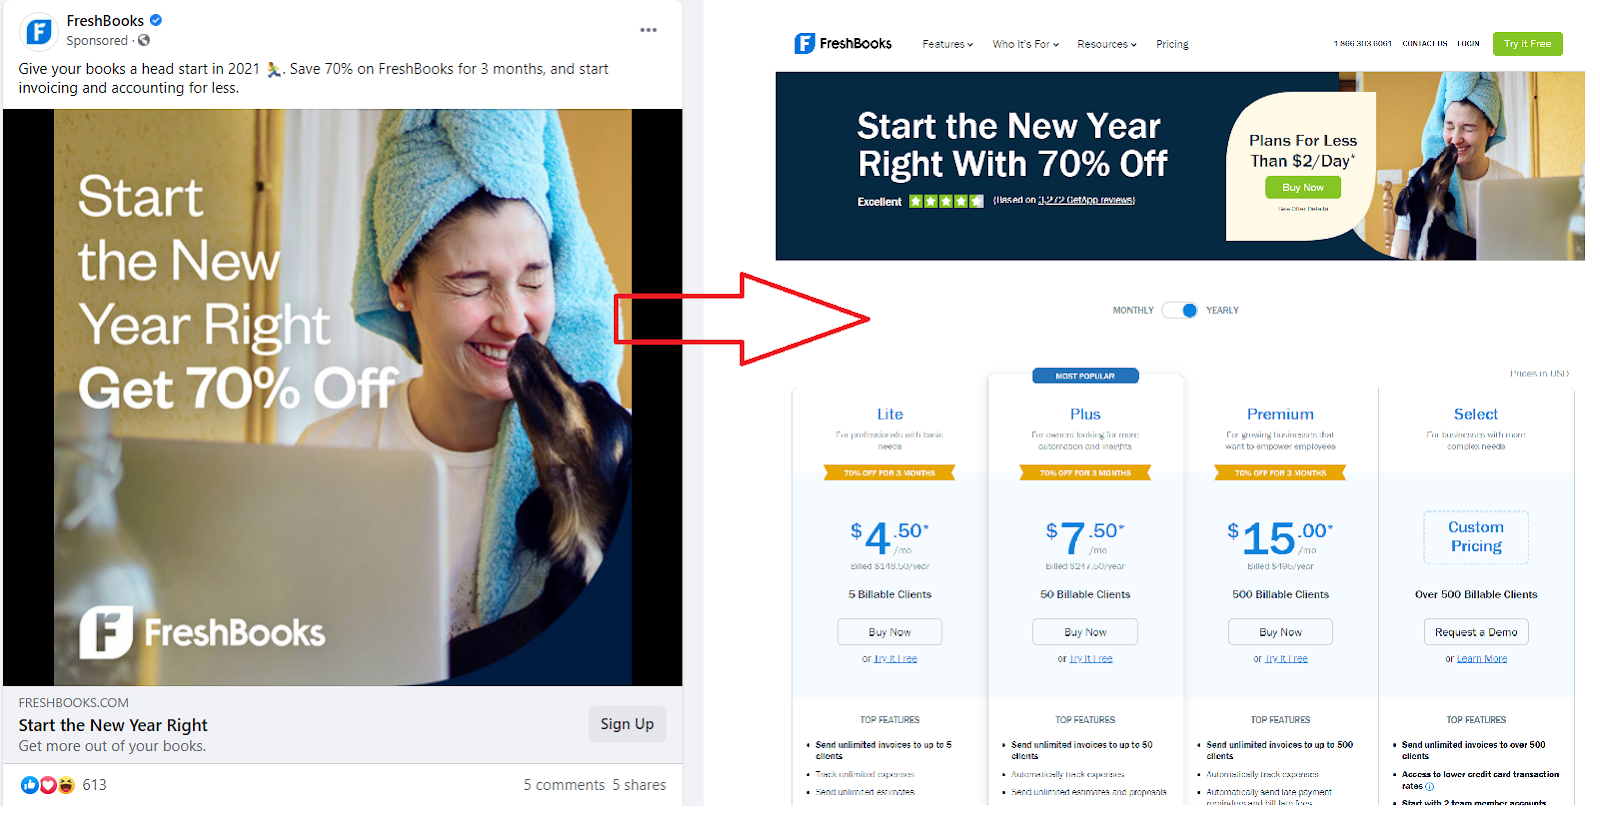 landing page continuity for facebook ppc